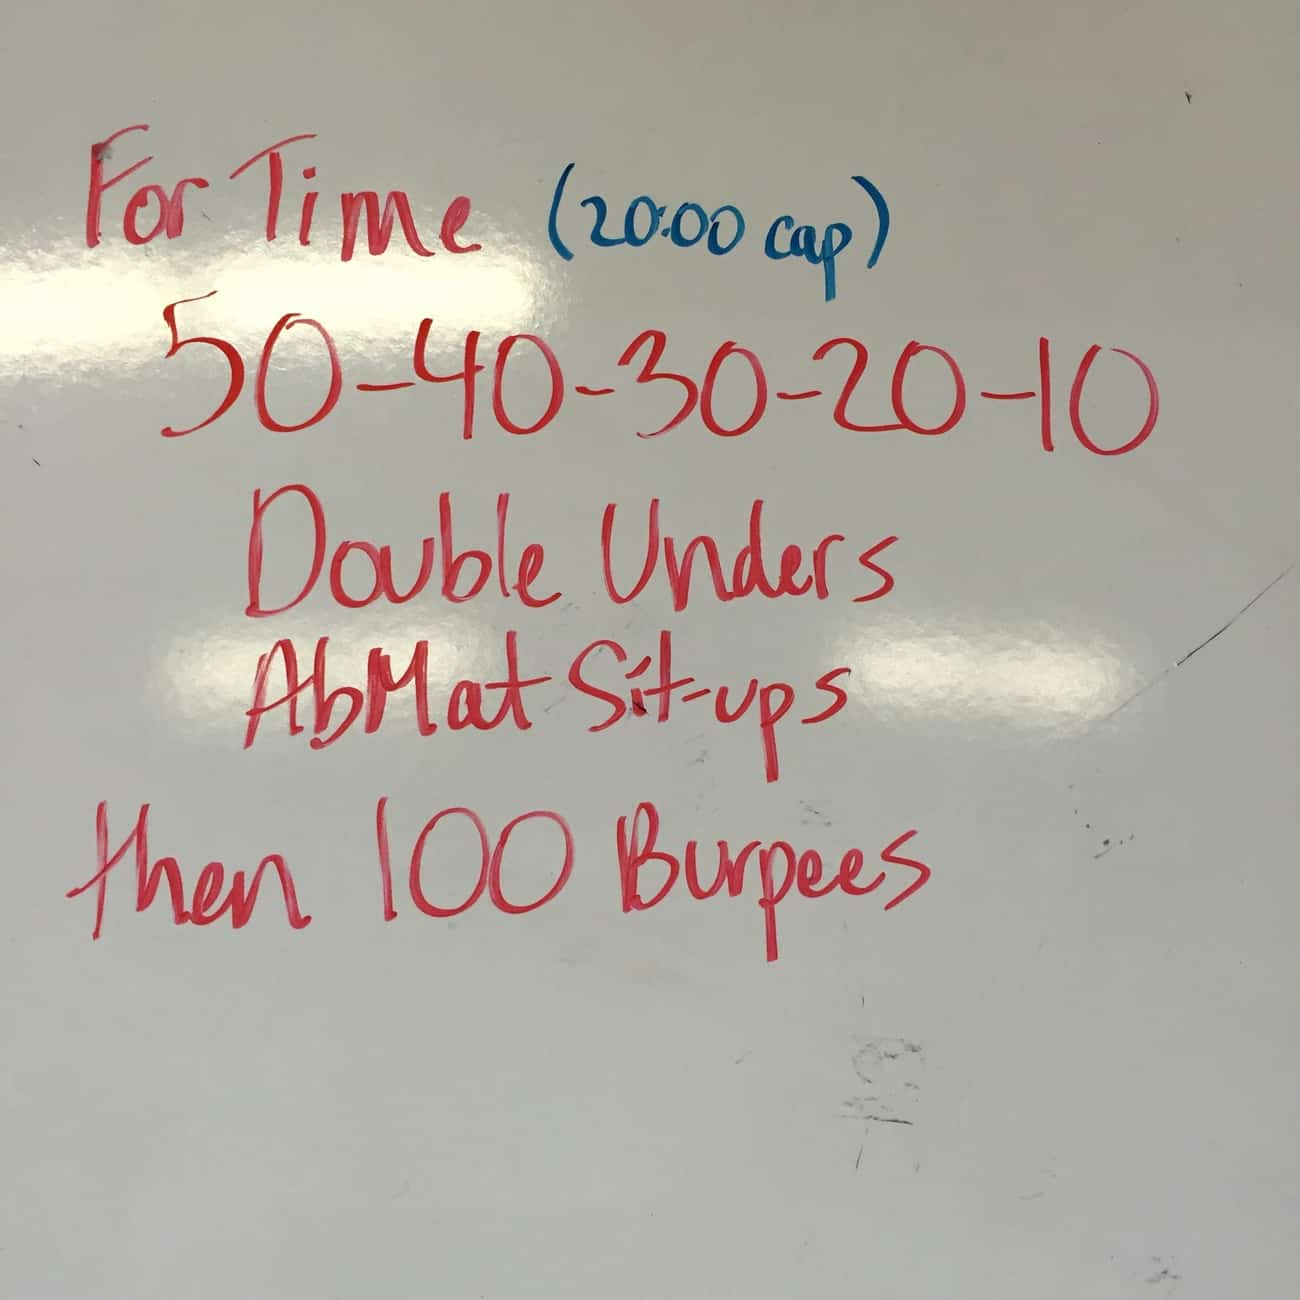 Annie plus 100 Burpees